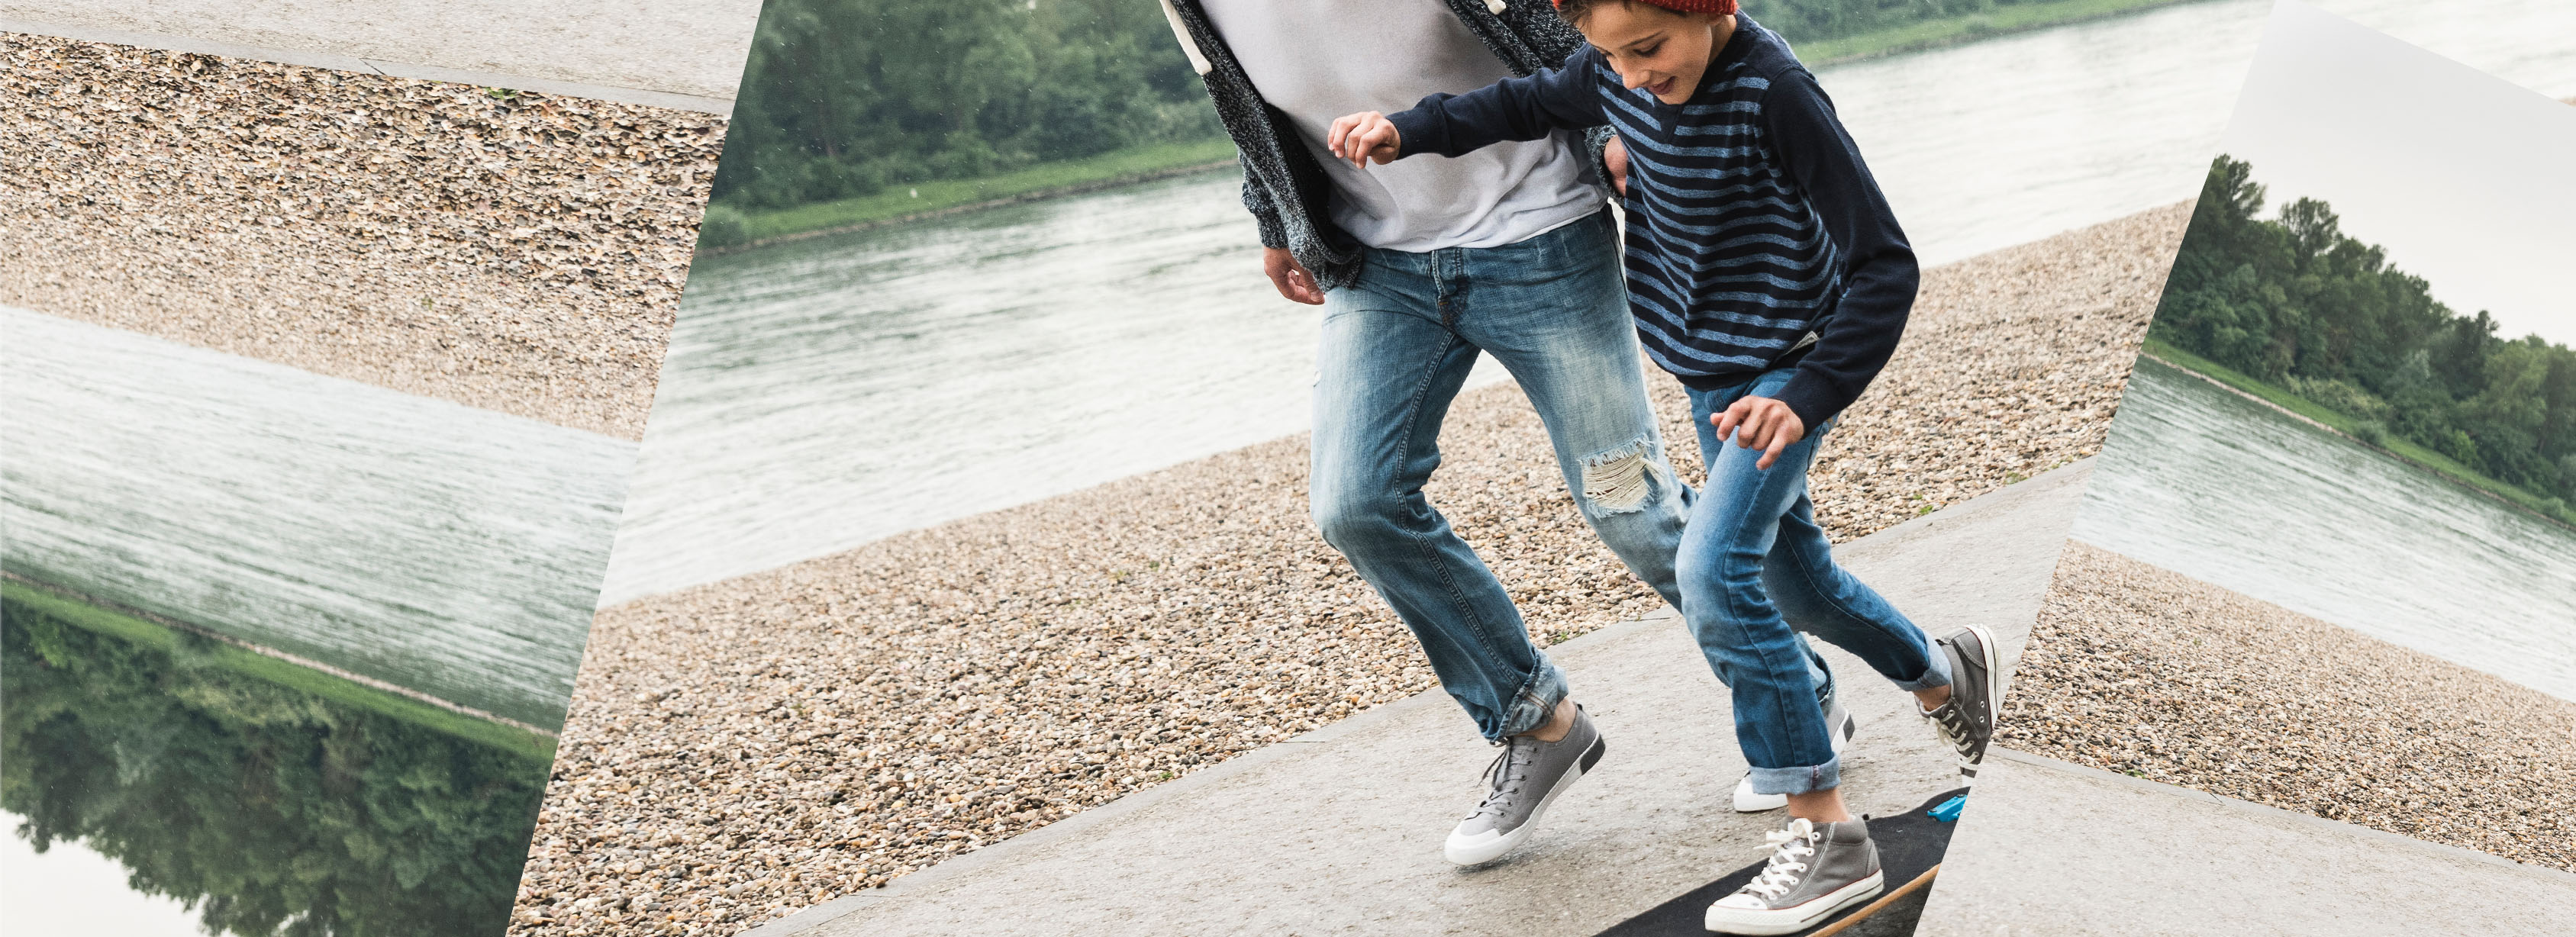 Parent running alongside young child skateboarding